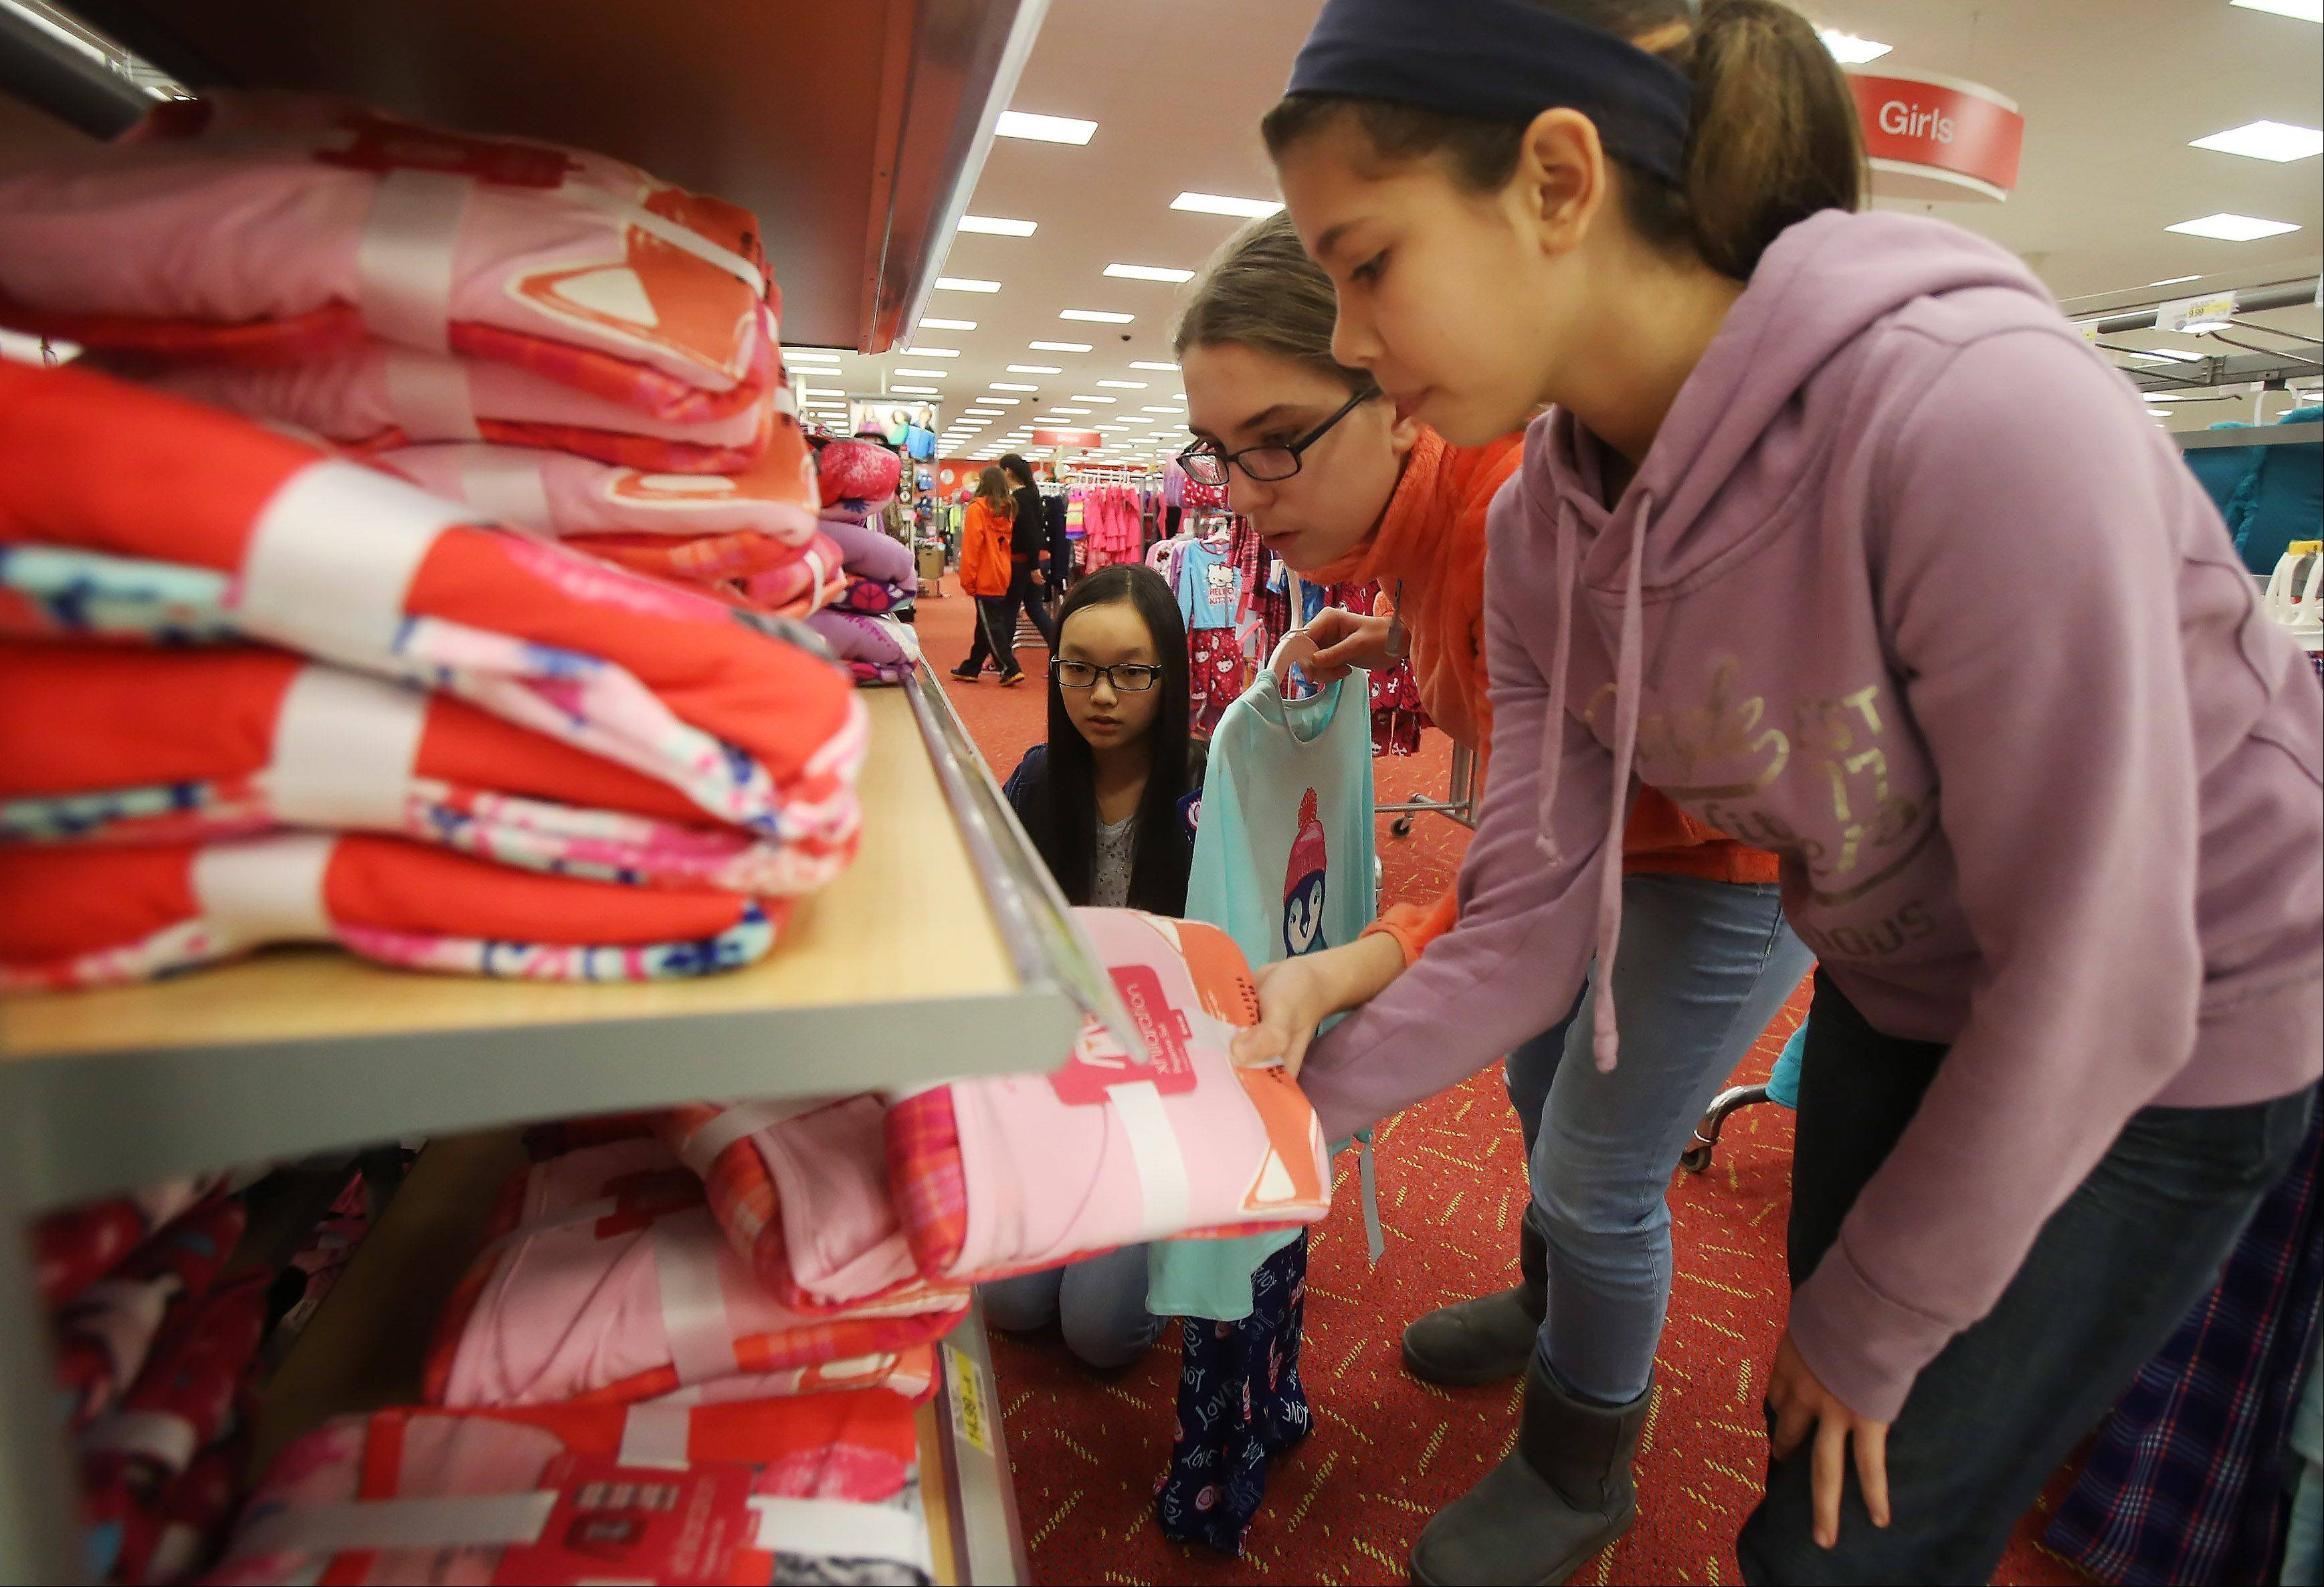 Seventh-graders Stephanie Rivas, right, Julia Sulicka and Anna Lee are among the Carl Sandburg Middle School students buying toys and clothing at Target in Mundelein on Tuesday for a needy family. The school�s Community Service Club raised $333 to help the family for the holidays.